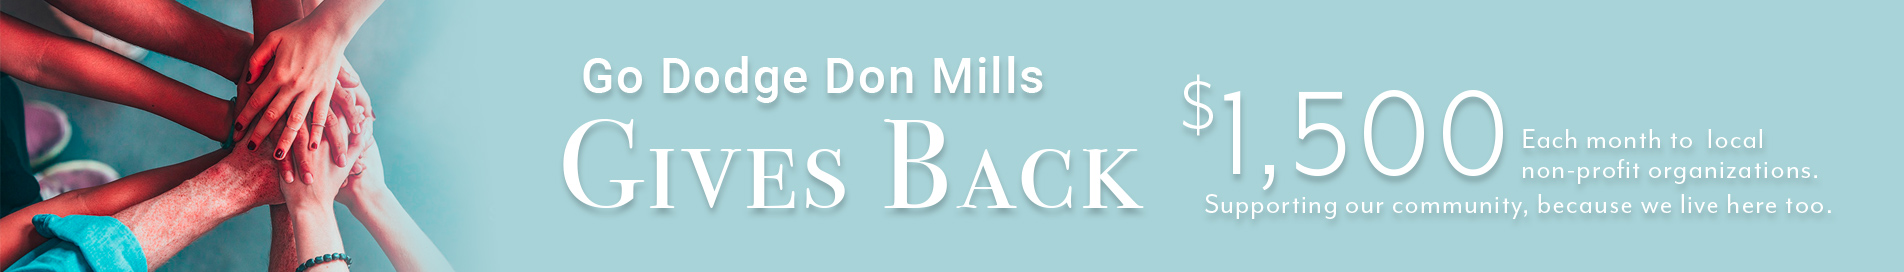 Go Dodge Don Mills Gives Back Banner